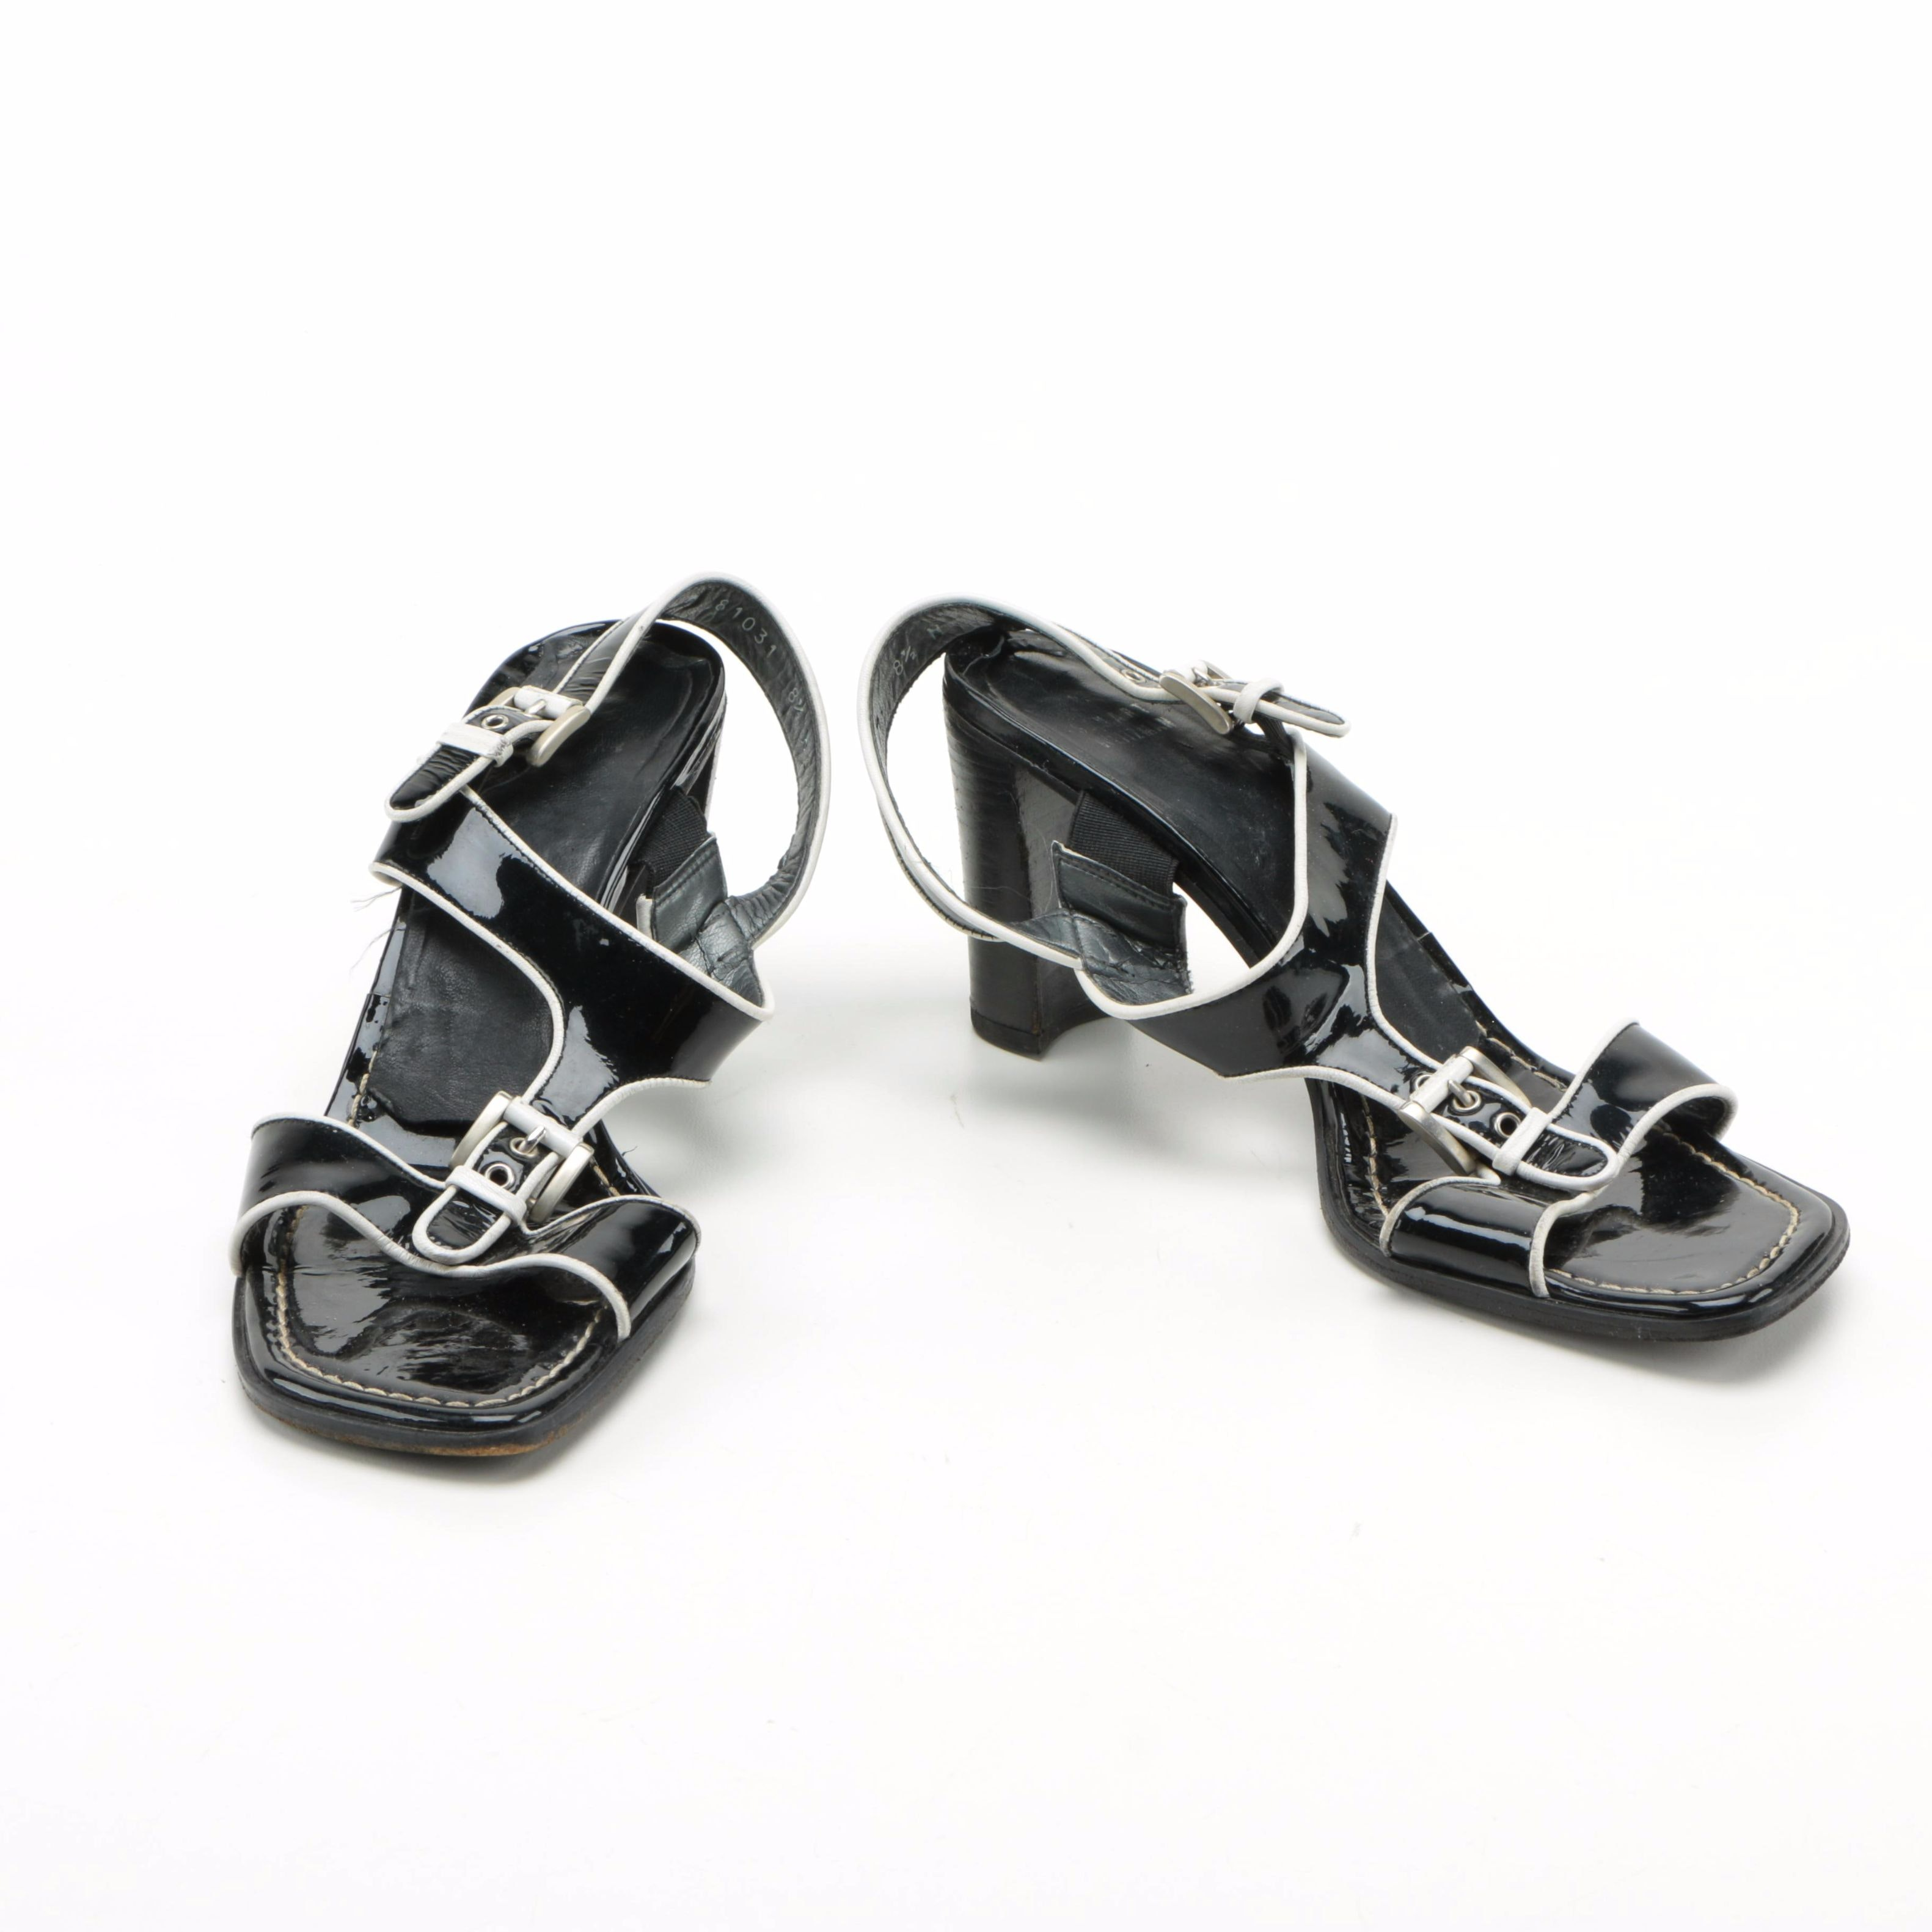 Stuart Weitzman Black and White Patent Leather Sandals